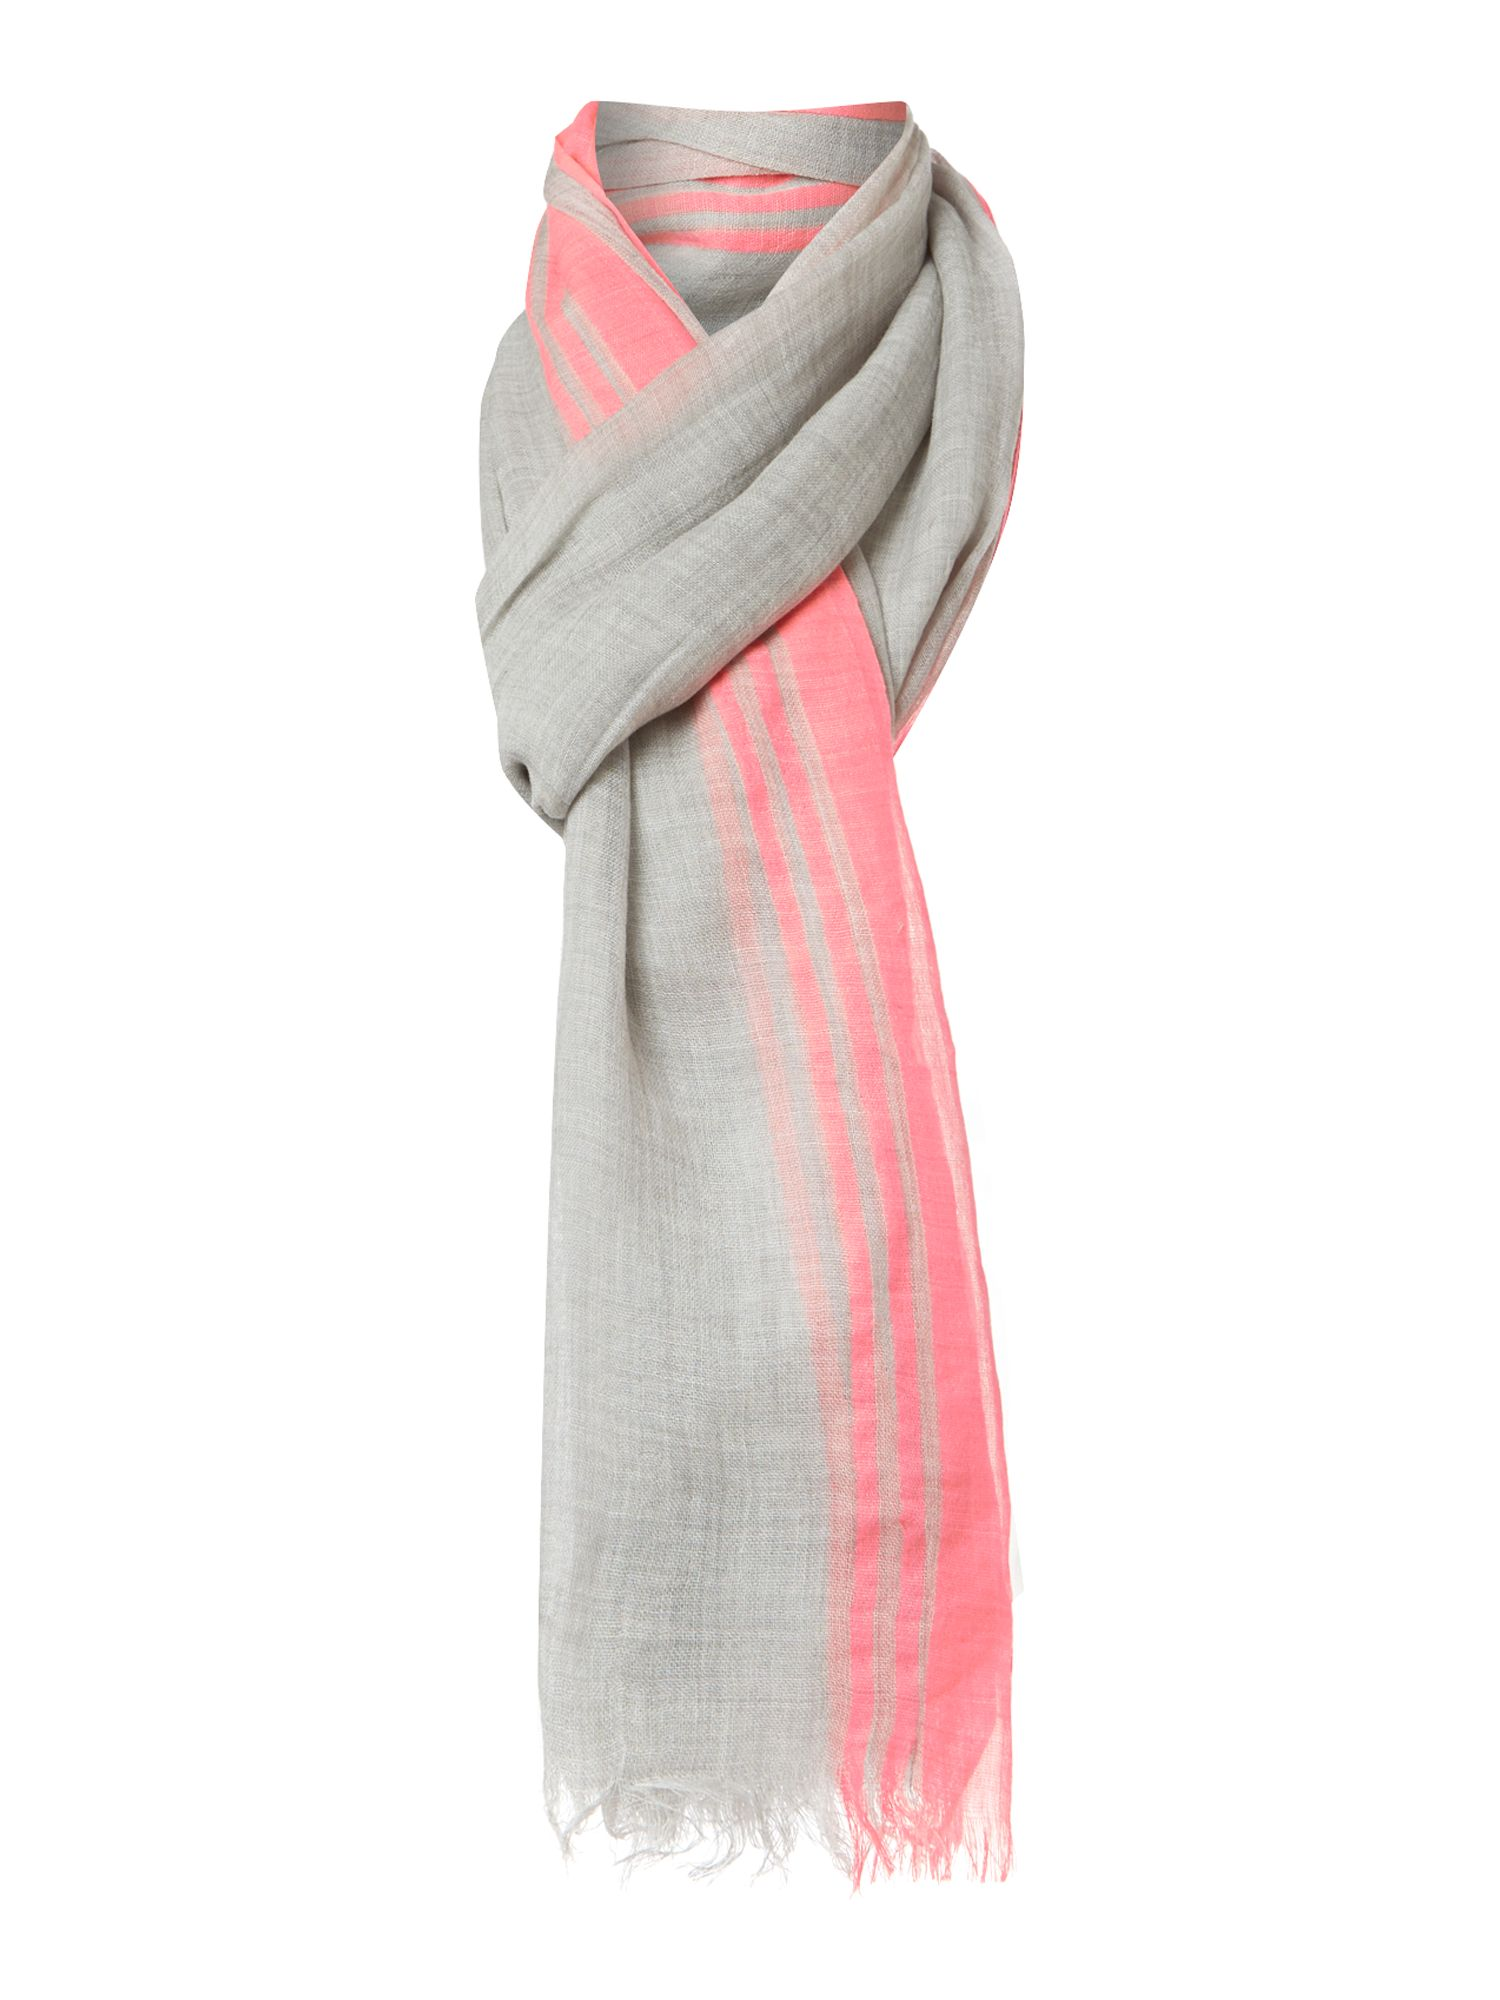 Printed scarf with neon trim